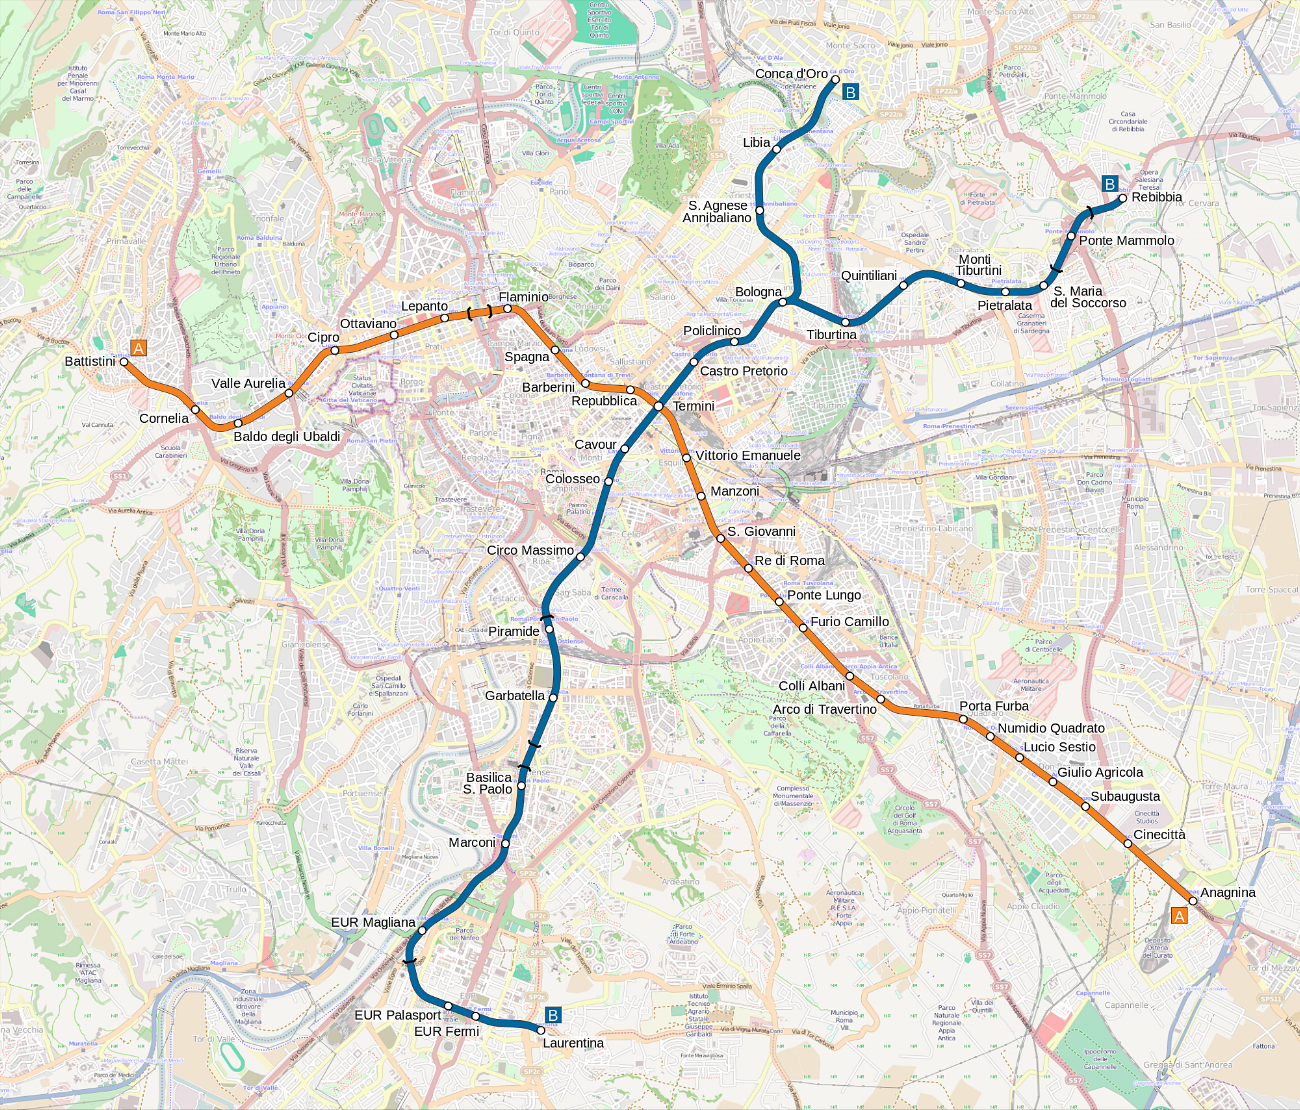 METRO MAP: - Click on the map to see a larger version of the underground Metro system in Rome. Our apartment is along the Orange line, at the SPAGNA stop.